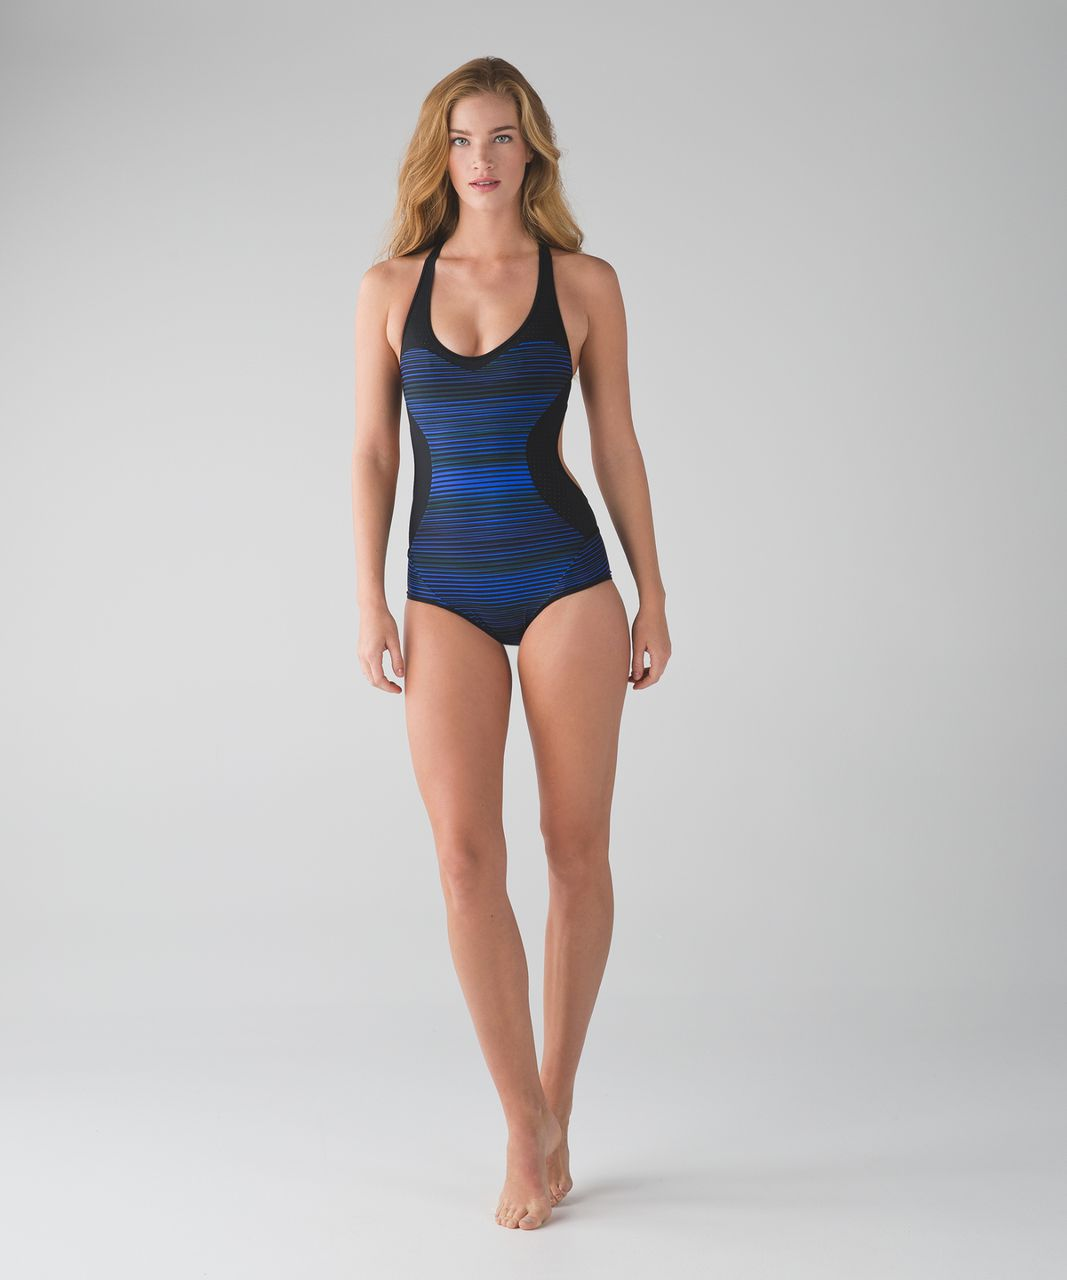 Lululemon Tidal Flow Racerback One Piece - Twisted Dune Harbor Blue Black / Black